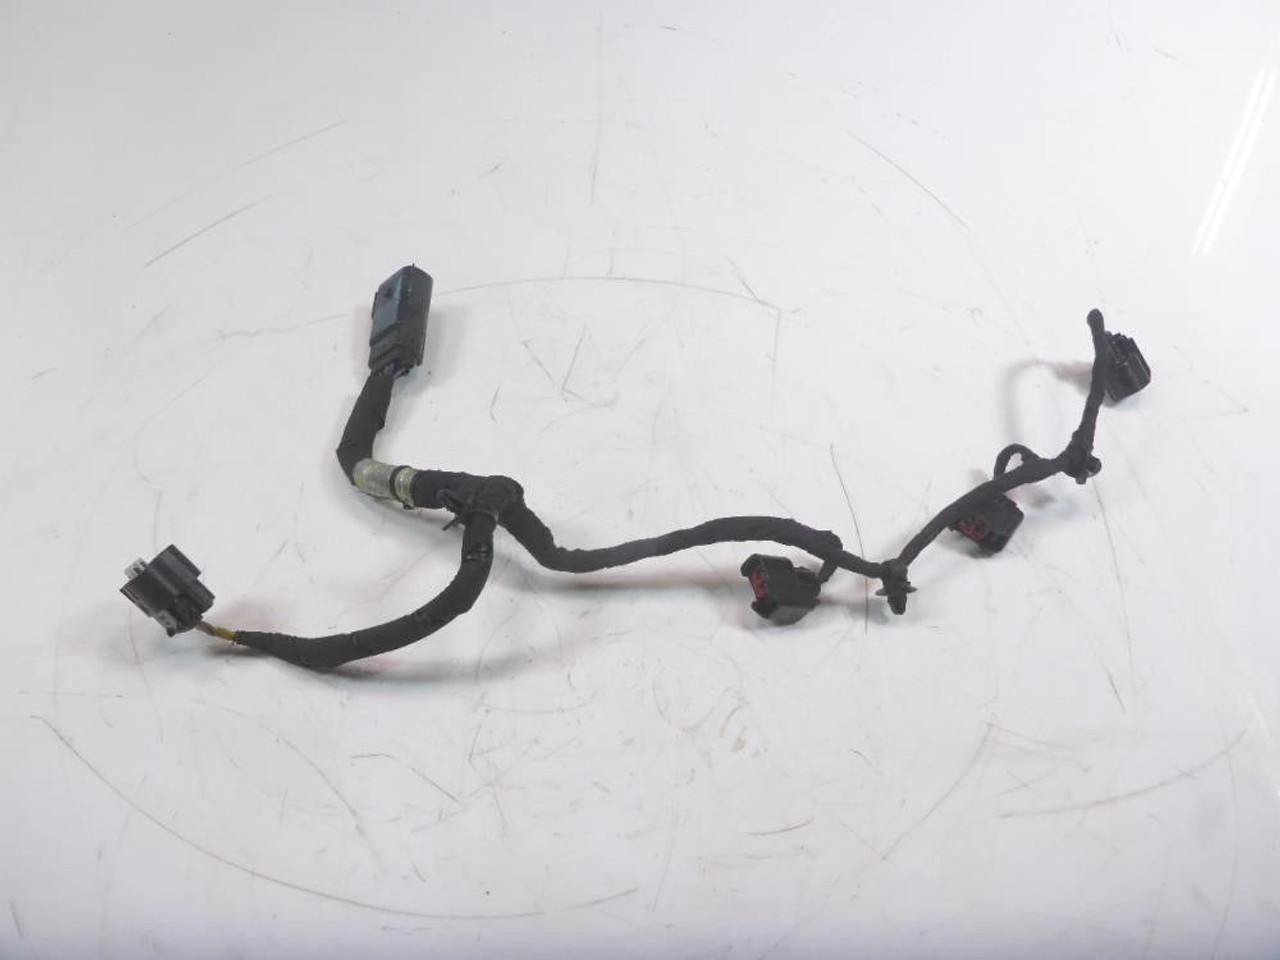 12 Chevrolet Camaro Fuel Injector Connector Wiring Wire Harness 12629928